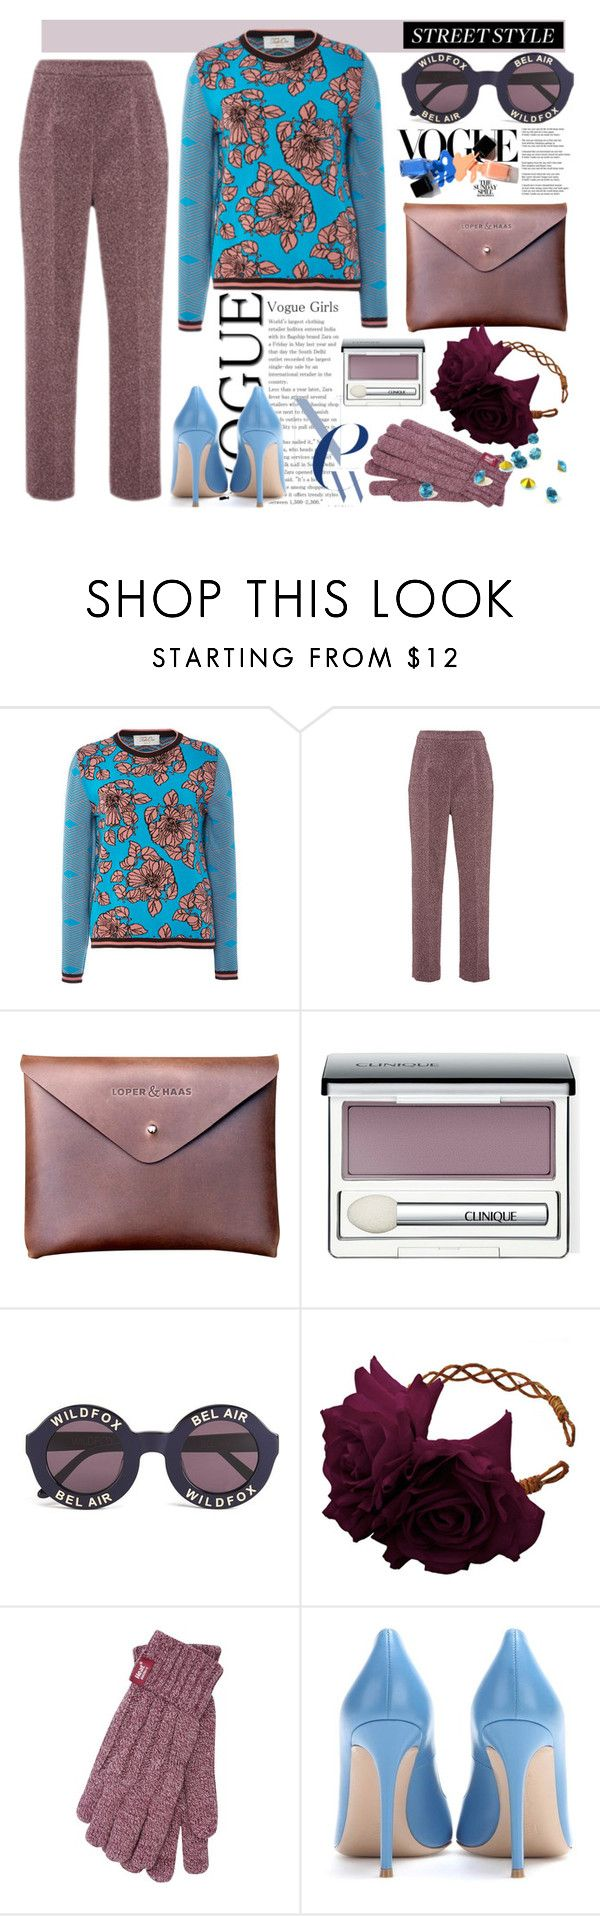 """""""Street Style by *Y"""" by ymociondesign ❤ liked on Polyvore featuring Tak.Ori, Isa Arfen, Clinique, Wildfox, Rock 'N Rose, Gianvito Rossi, Swarovski, vintage, women's clothing and women"""